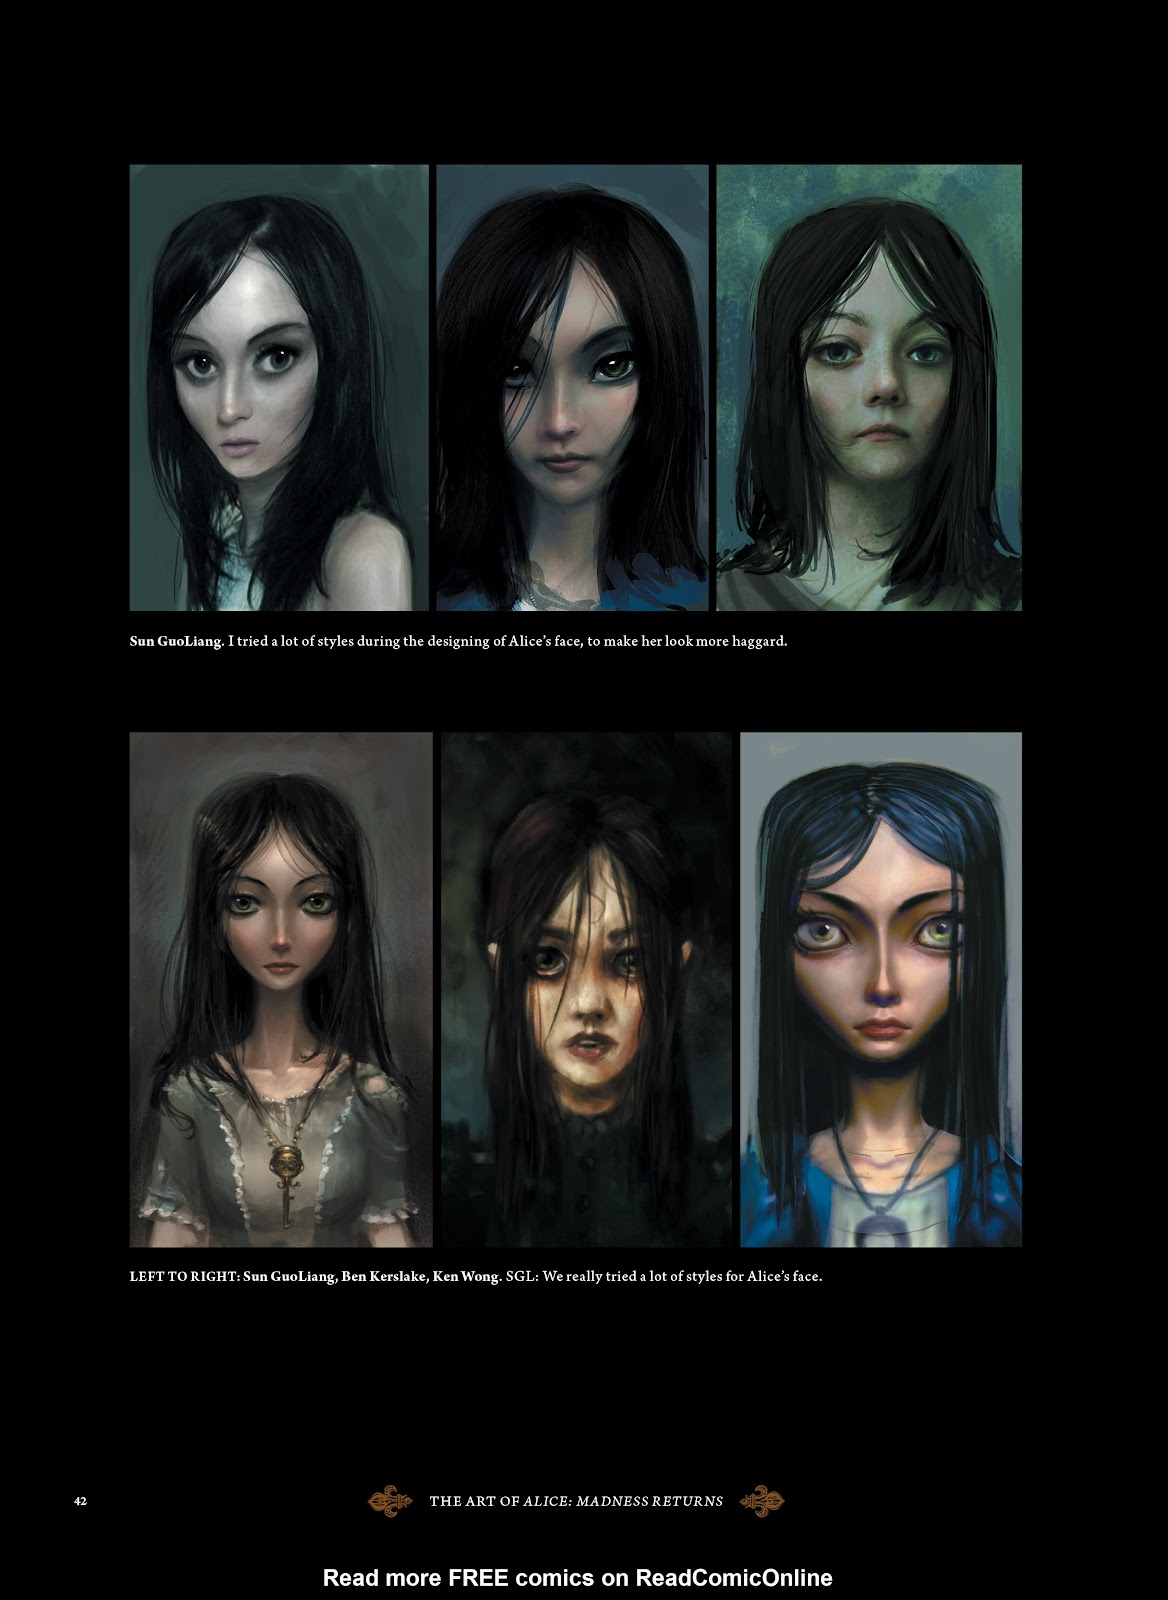 Read online The Art of Alice: Madness Returns comic -  Issue # TPB (Part 1) - 39